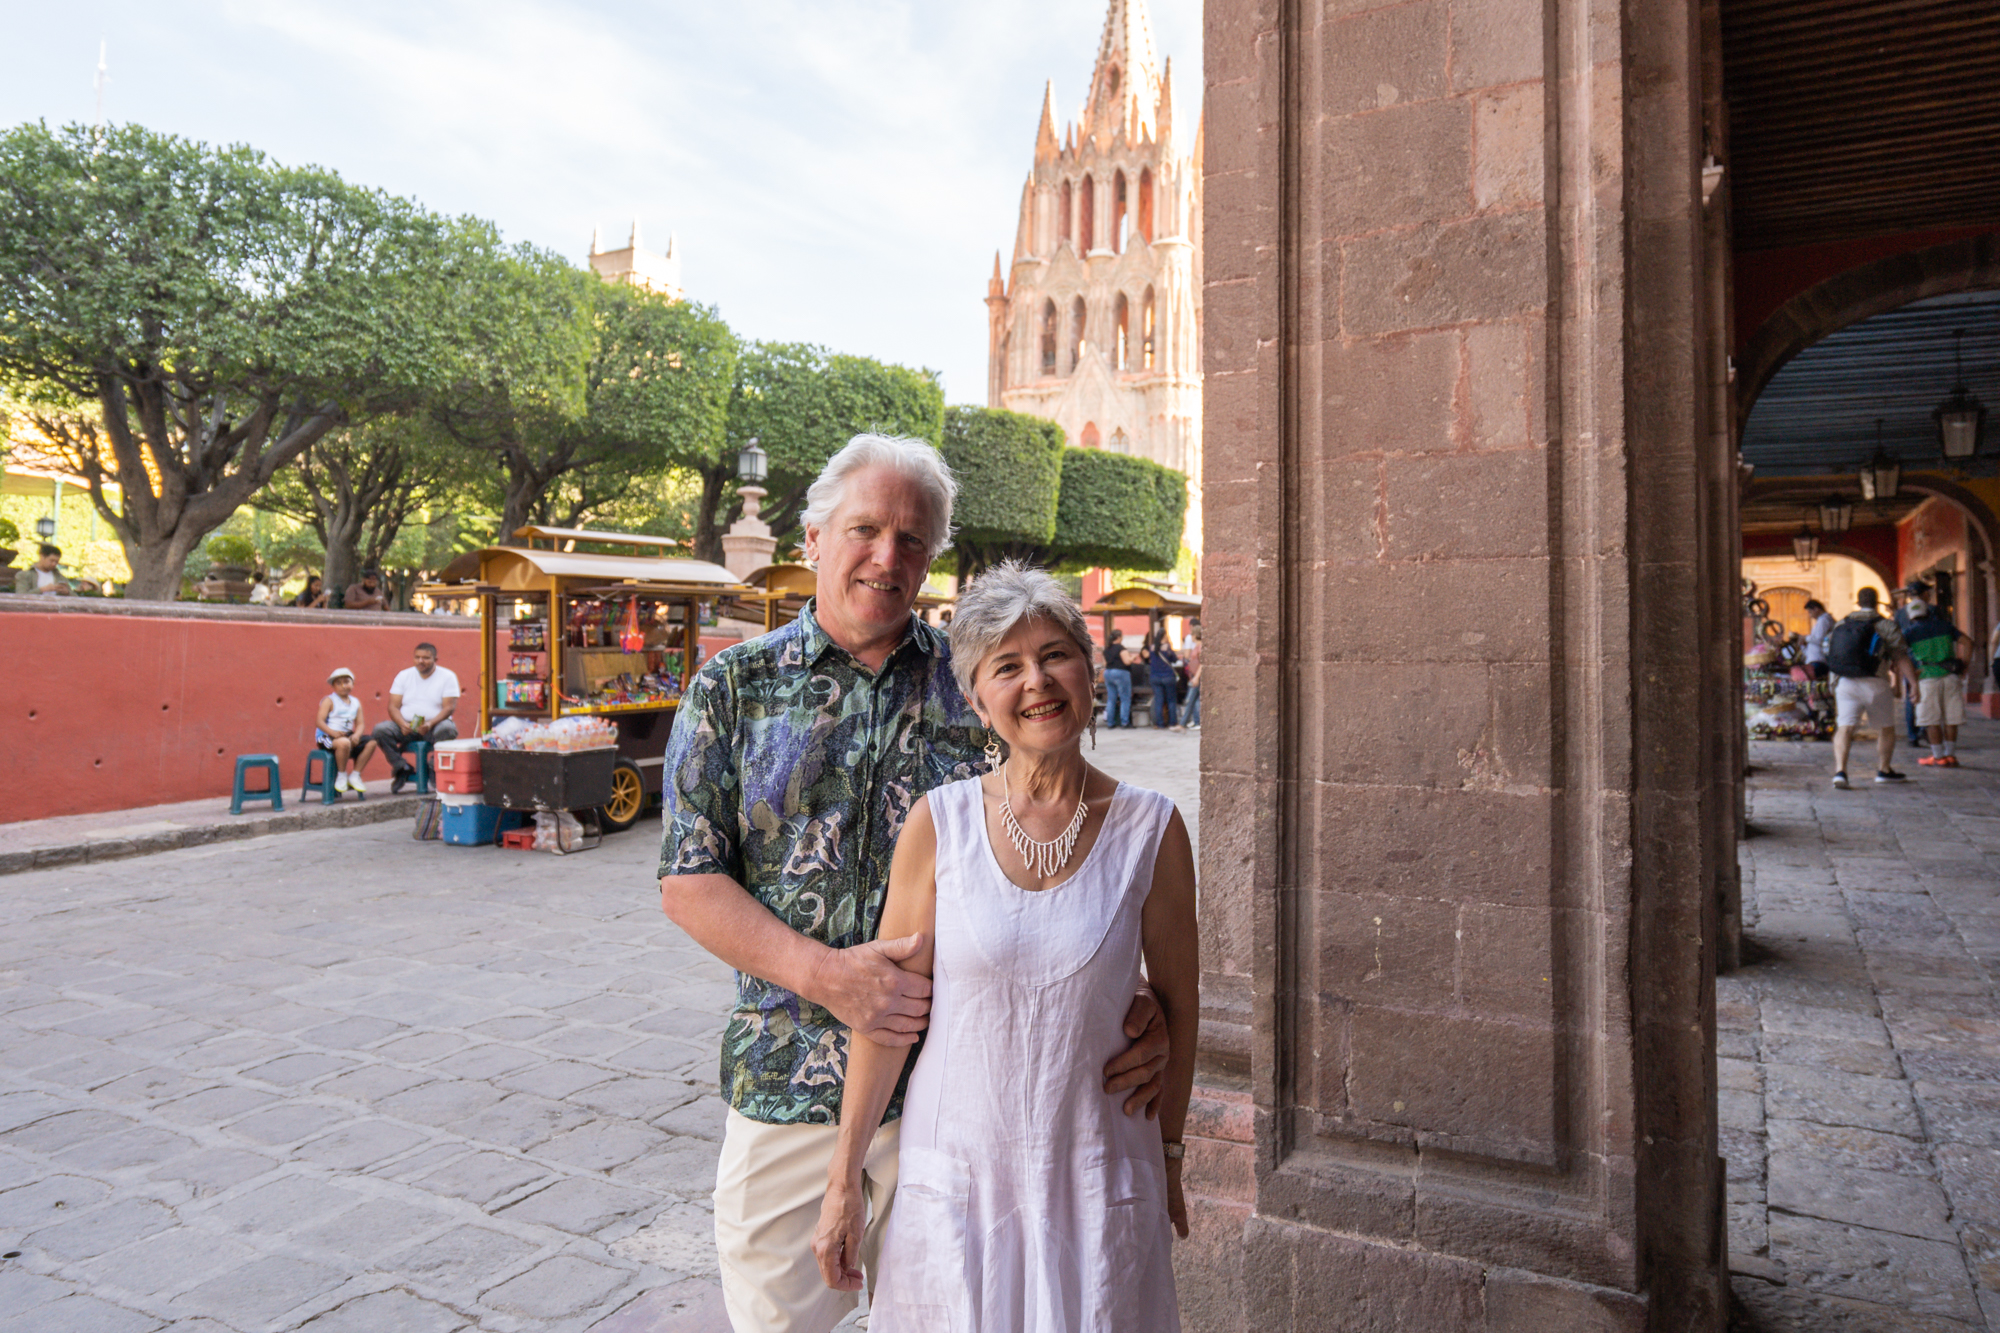 Photoshoot session in San Miguel de Allende with Suzanne and Leo-4.jpg